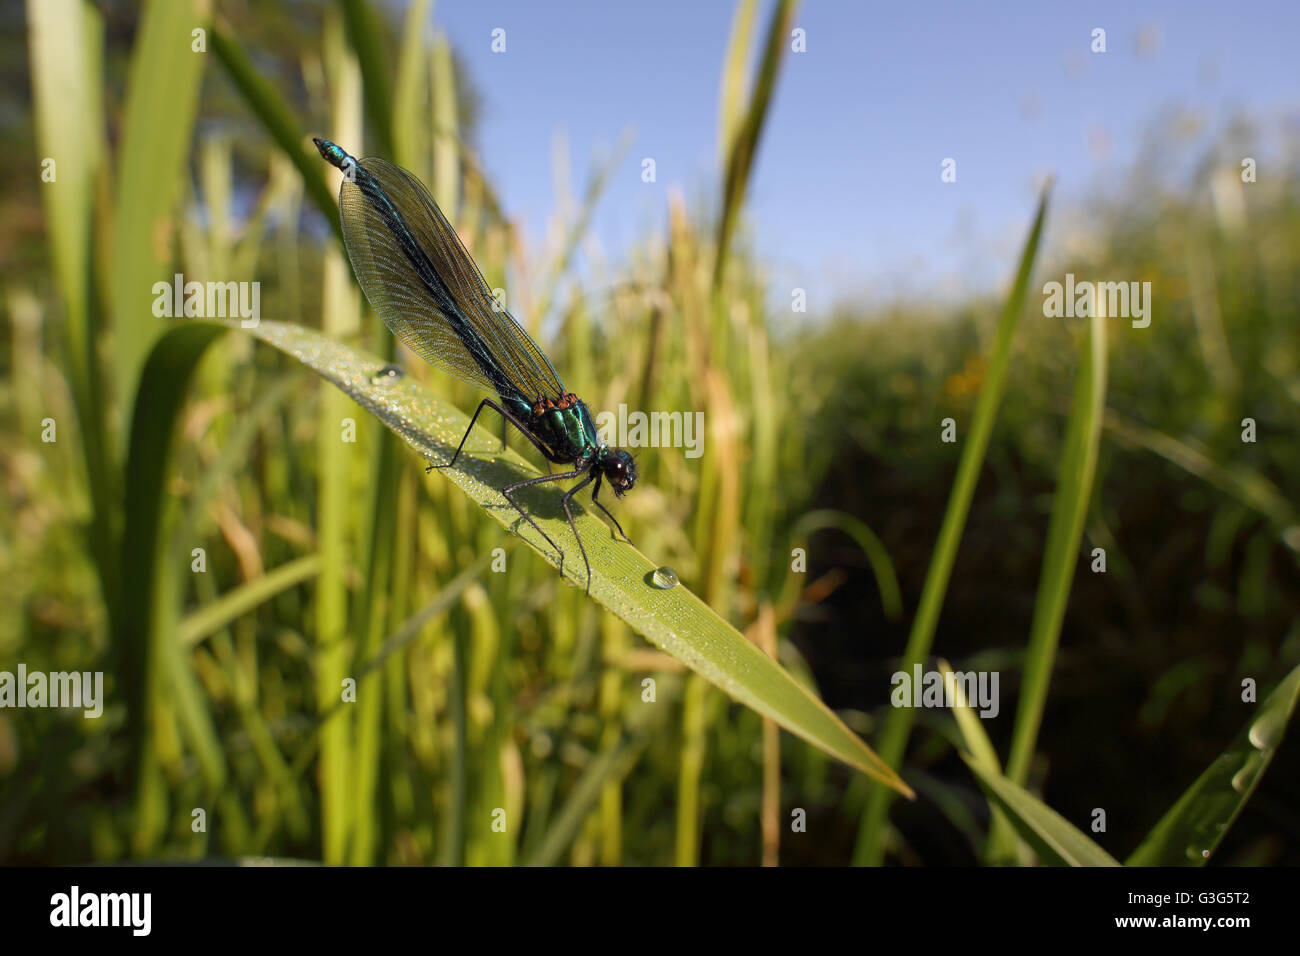 Banded demoiselle (Calopteryx splendens) and surroundings. Photographed by Vejle Aa in Denmark, June 2016. - Stock Image